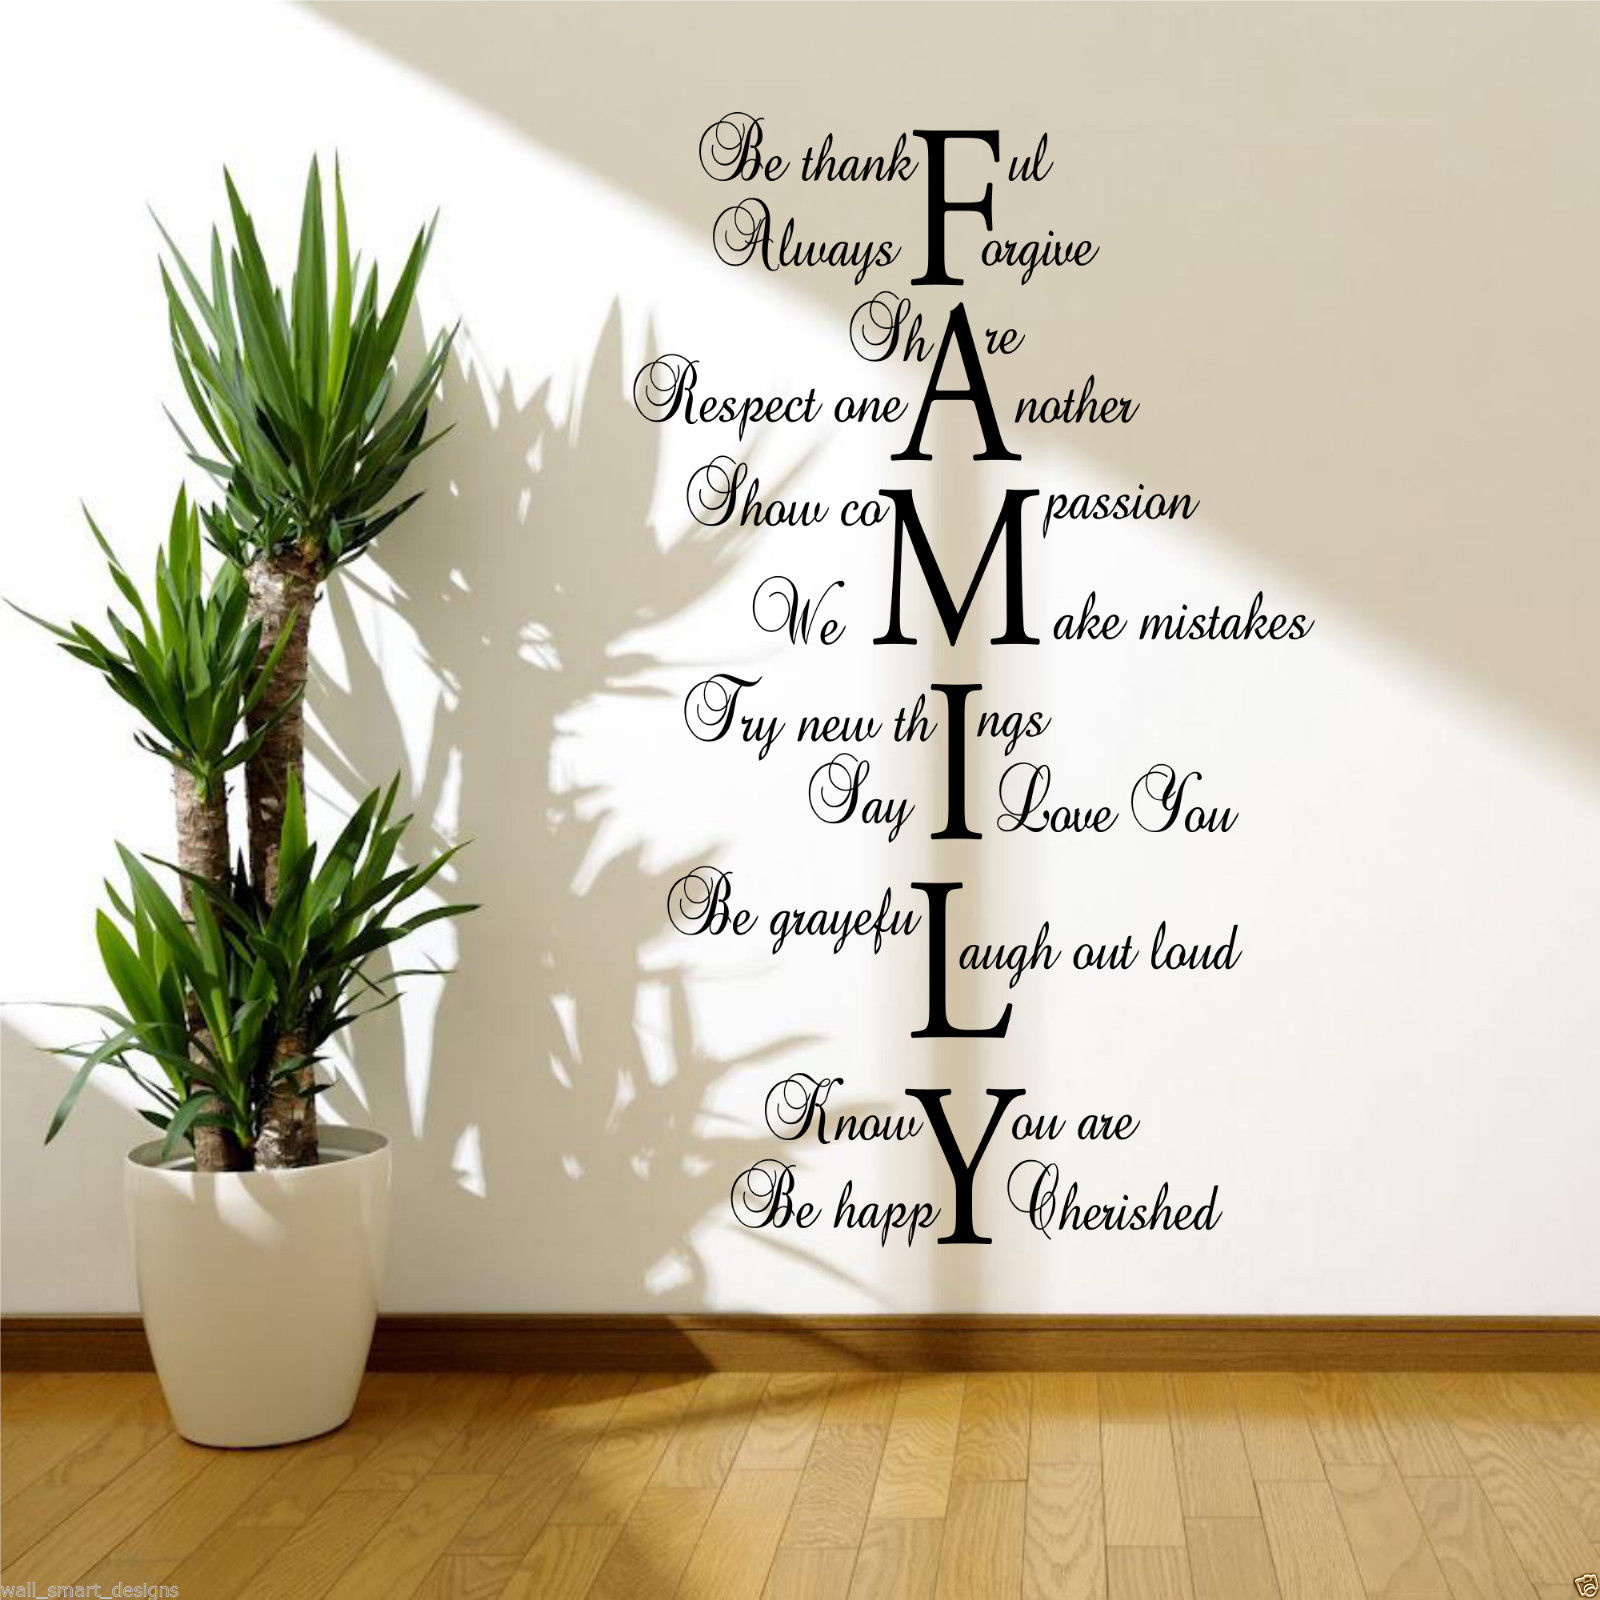 Family Love Life Wall Art Sticker Quote Room Decal Mural Transfer Sticker Wsd417 Ebay